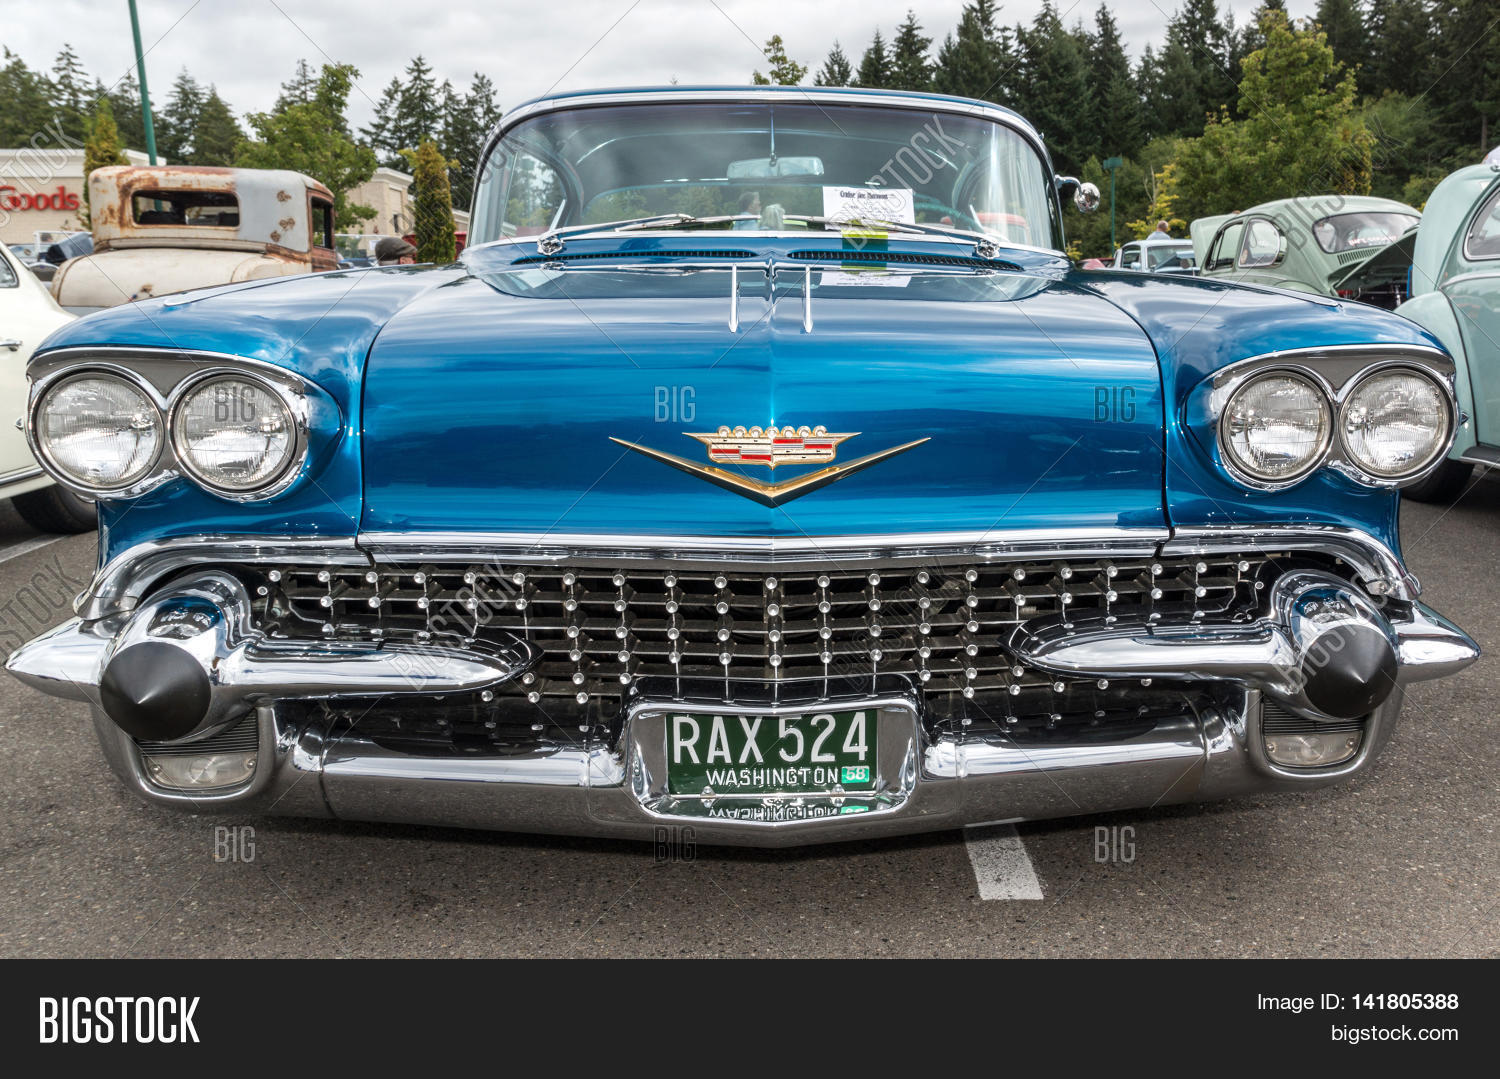 Front View Image Photo Free Trial Bigstock - Classic car show washington